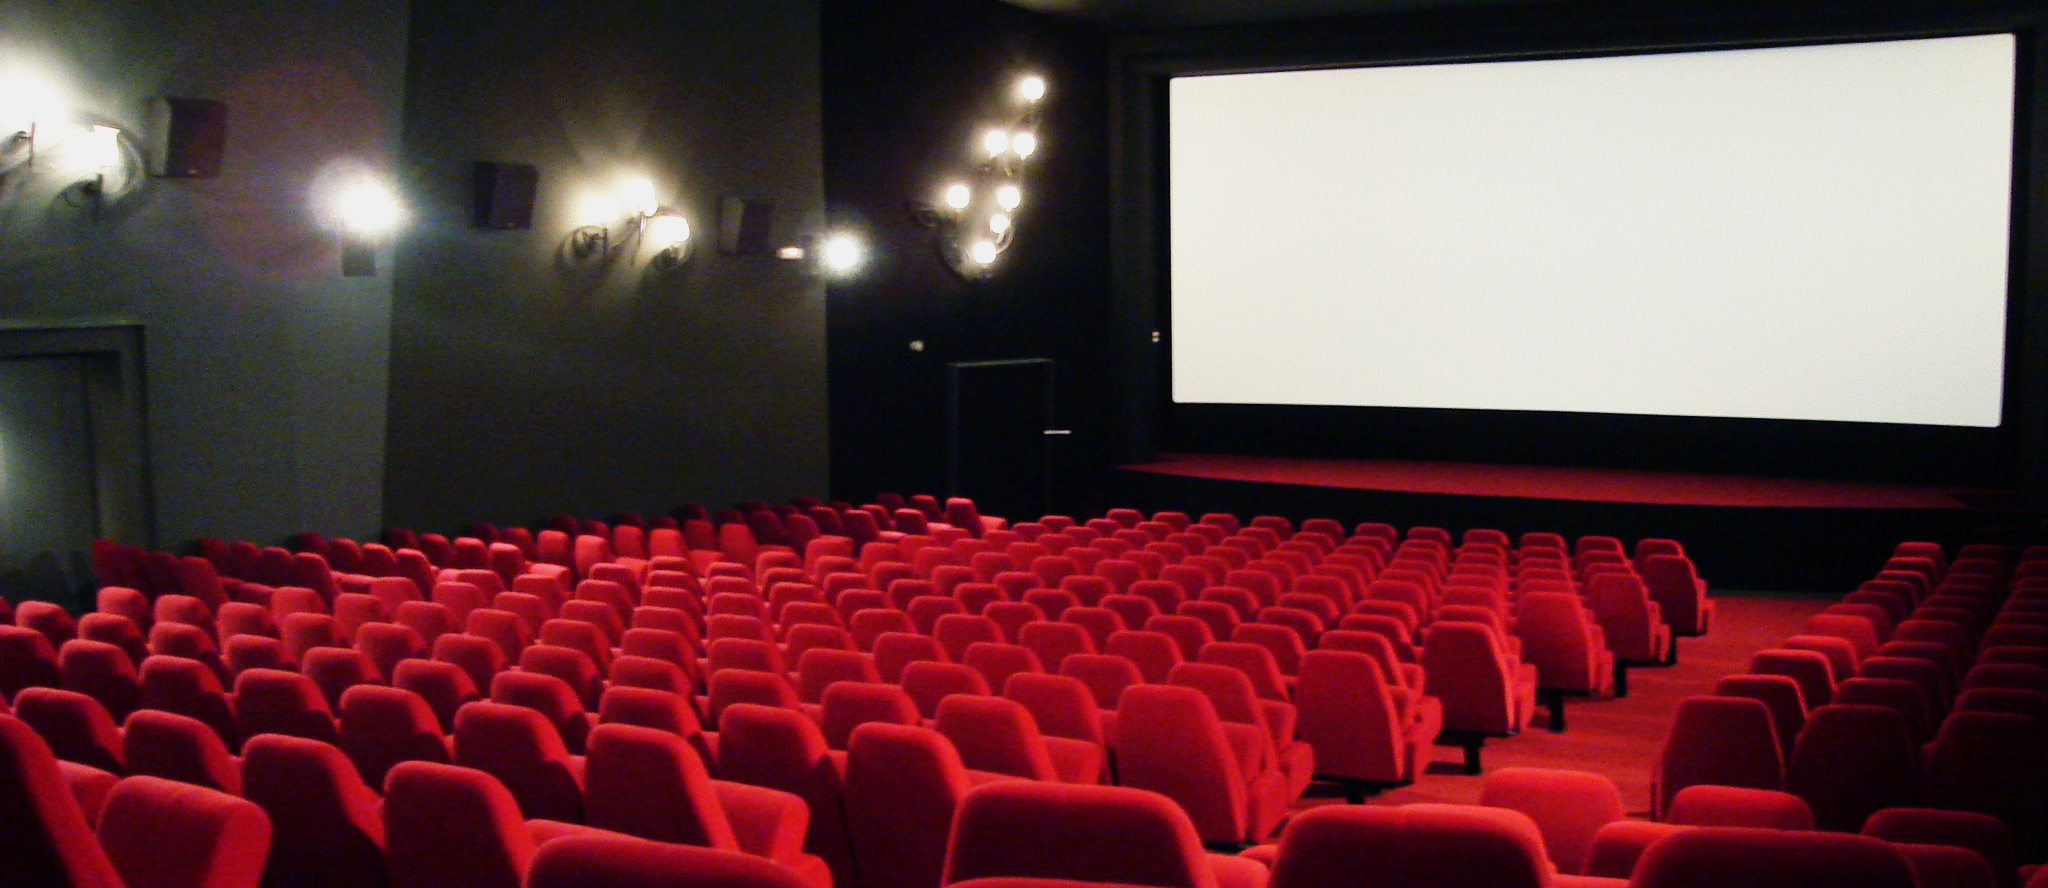 photo salle de cinema cinema mega cgr torcy deco salle cinema deco salle de cinema x a lyon. Black Bedroom Furniture Sets. Home Design Ideas